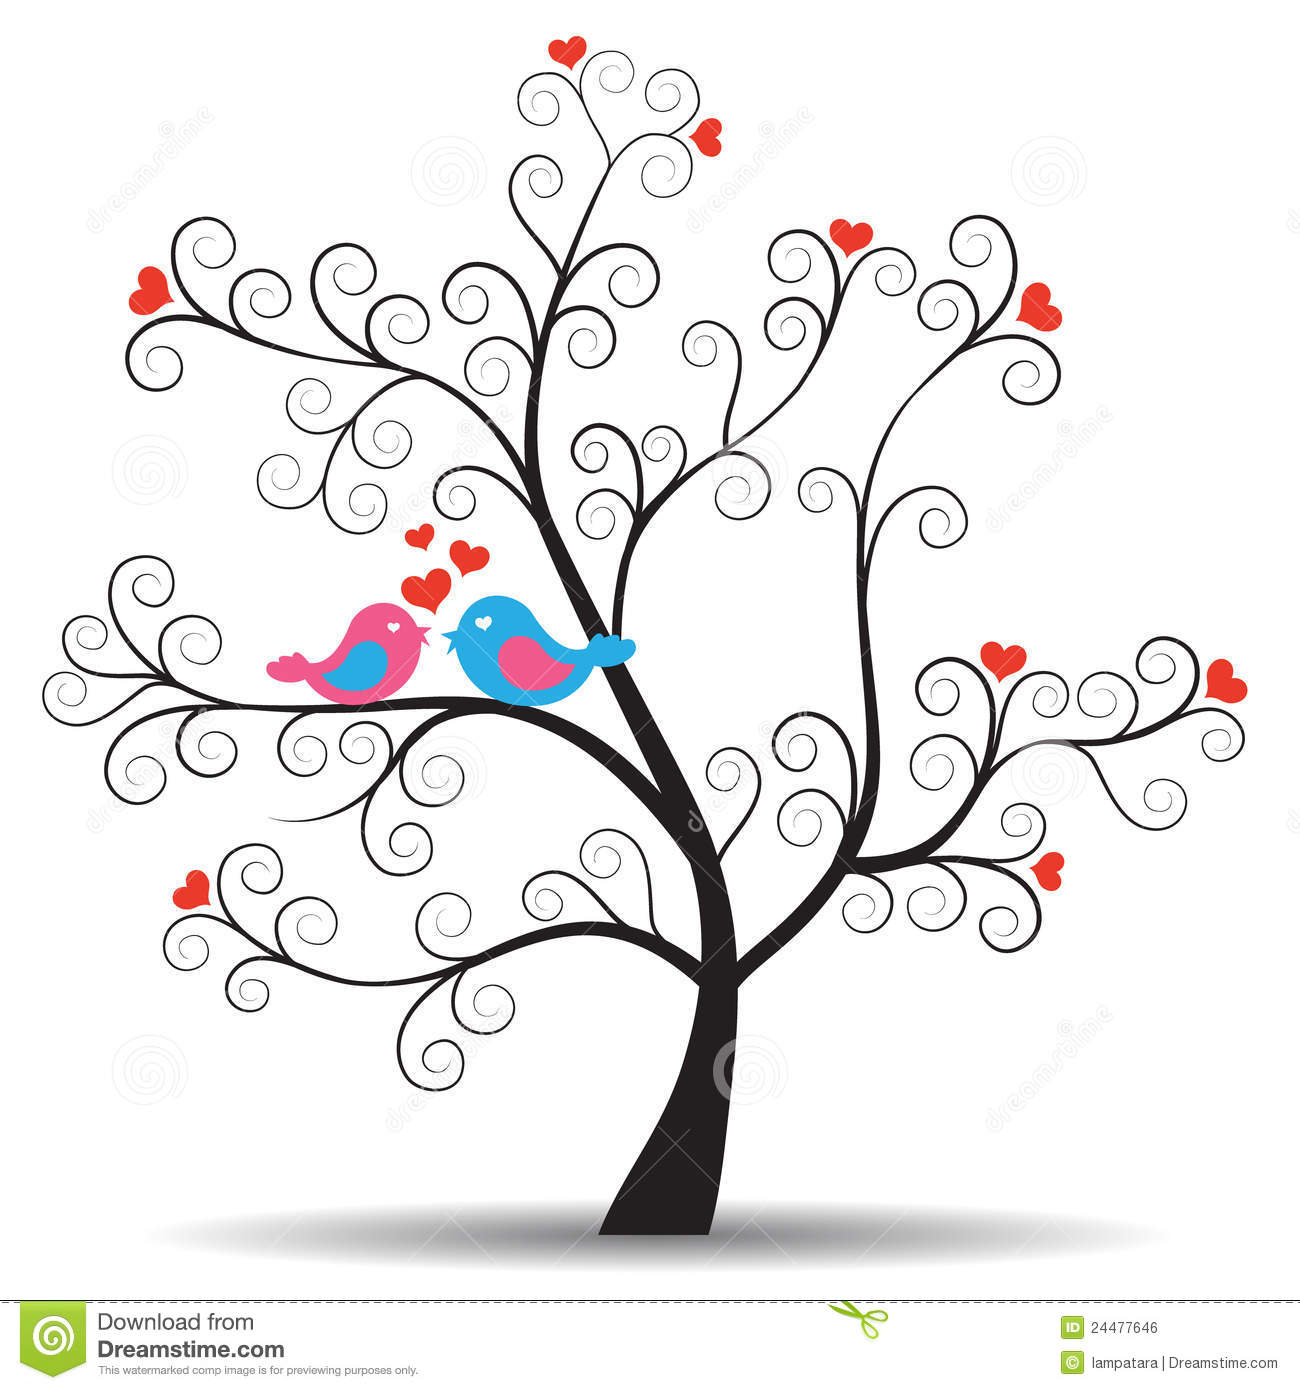 ... With Inlove Couple Birds Royalty Free Stock Image - Image: 24477646